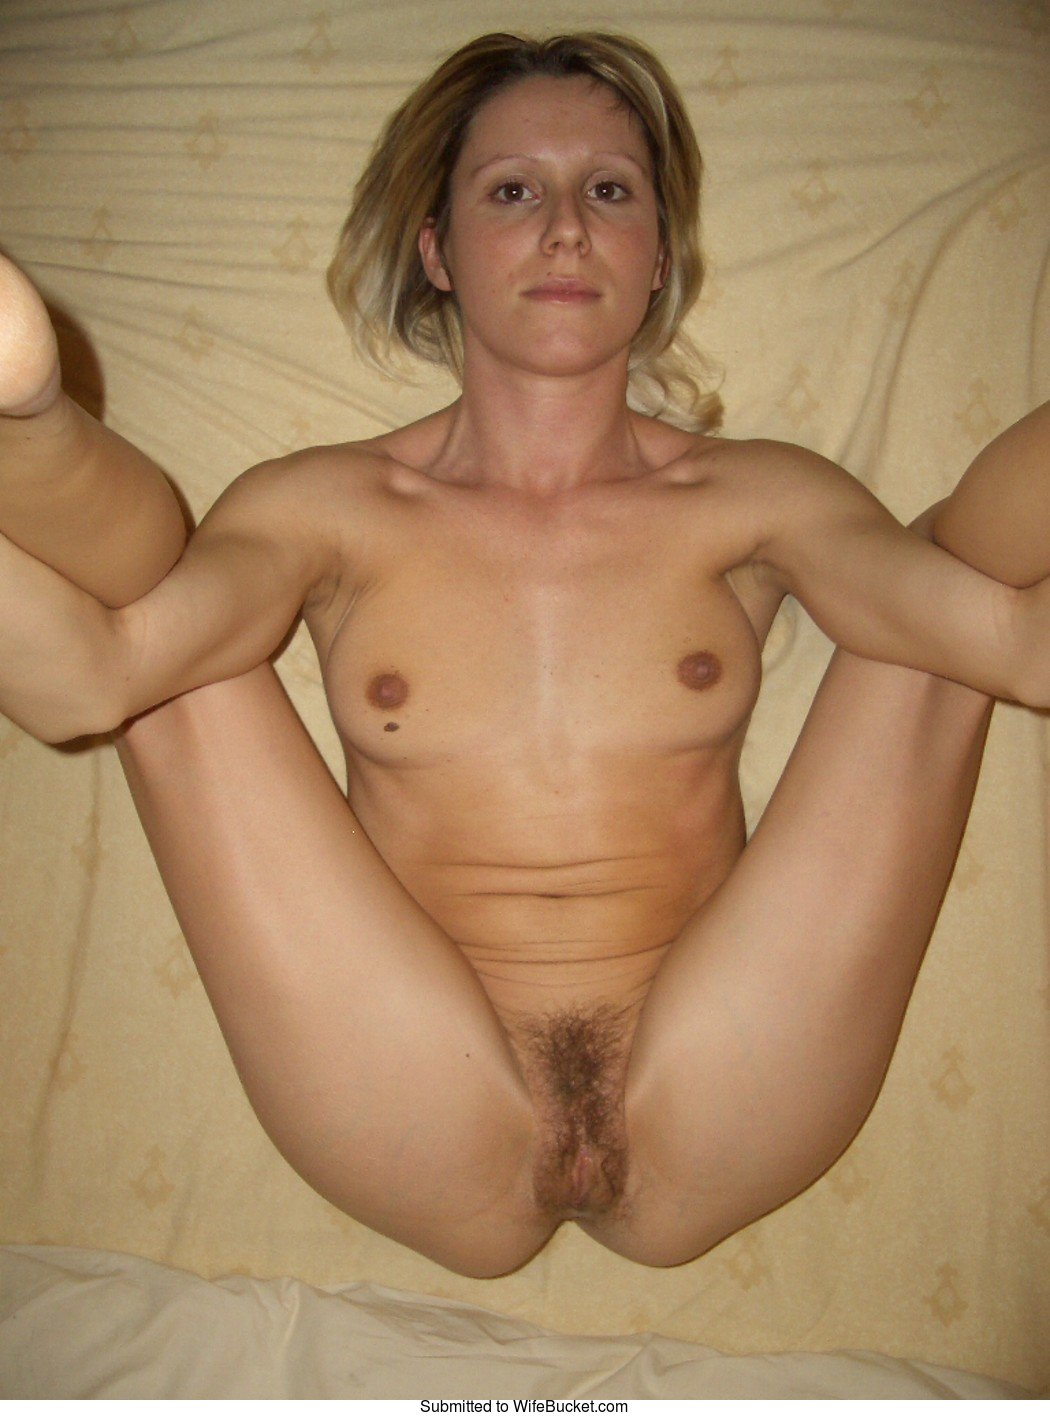 And have Explicit nude of my wife